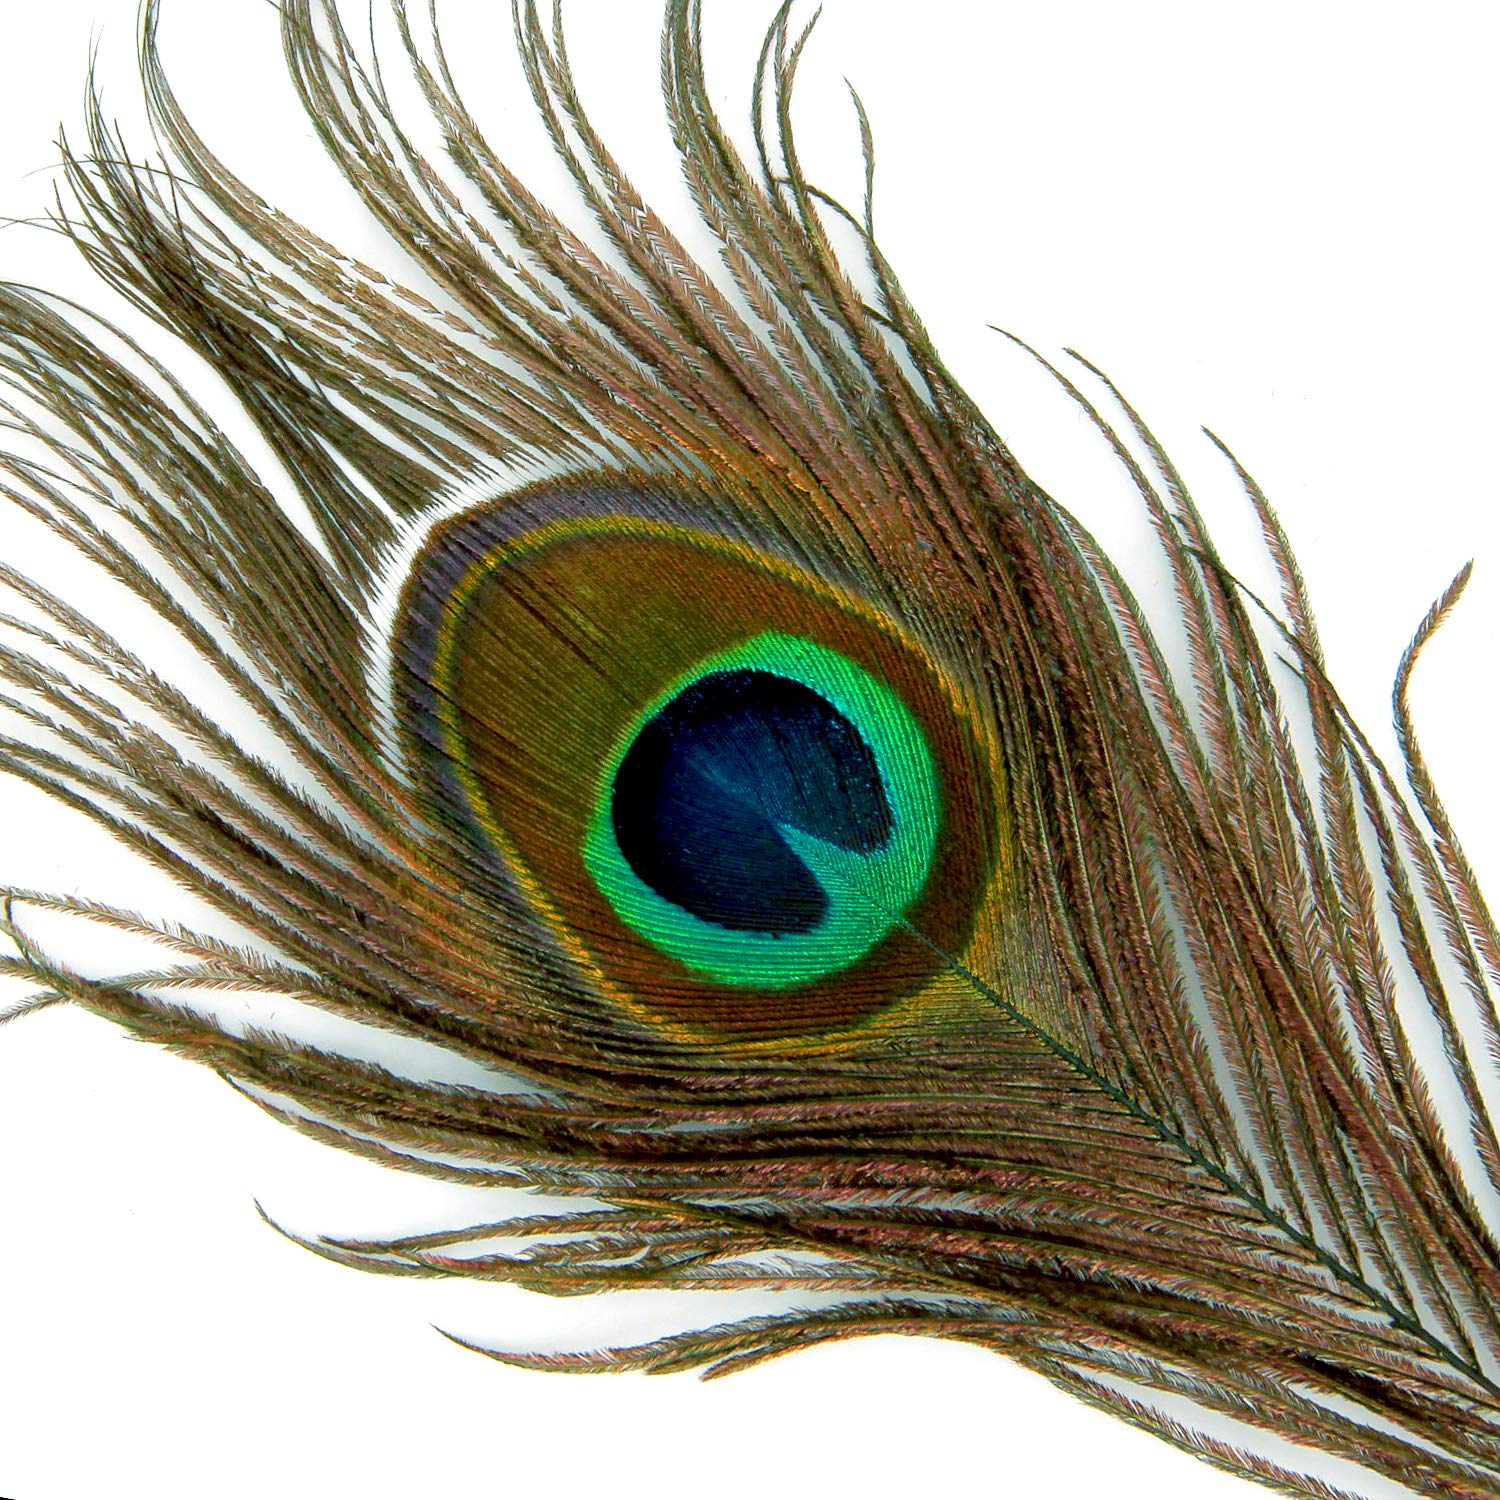 Blisstime High Quality Natural Peacock Feathers 10-12 30 by Blisstime